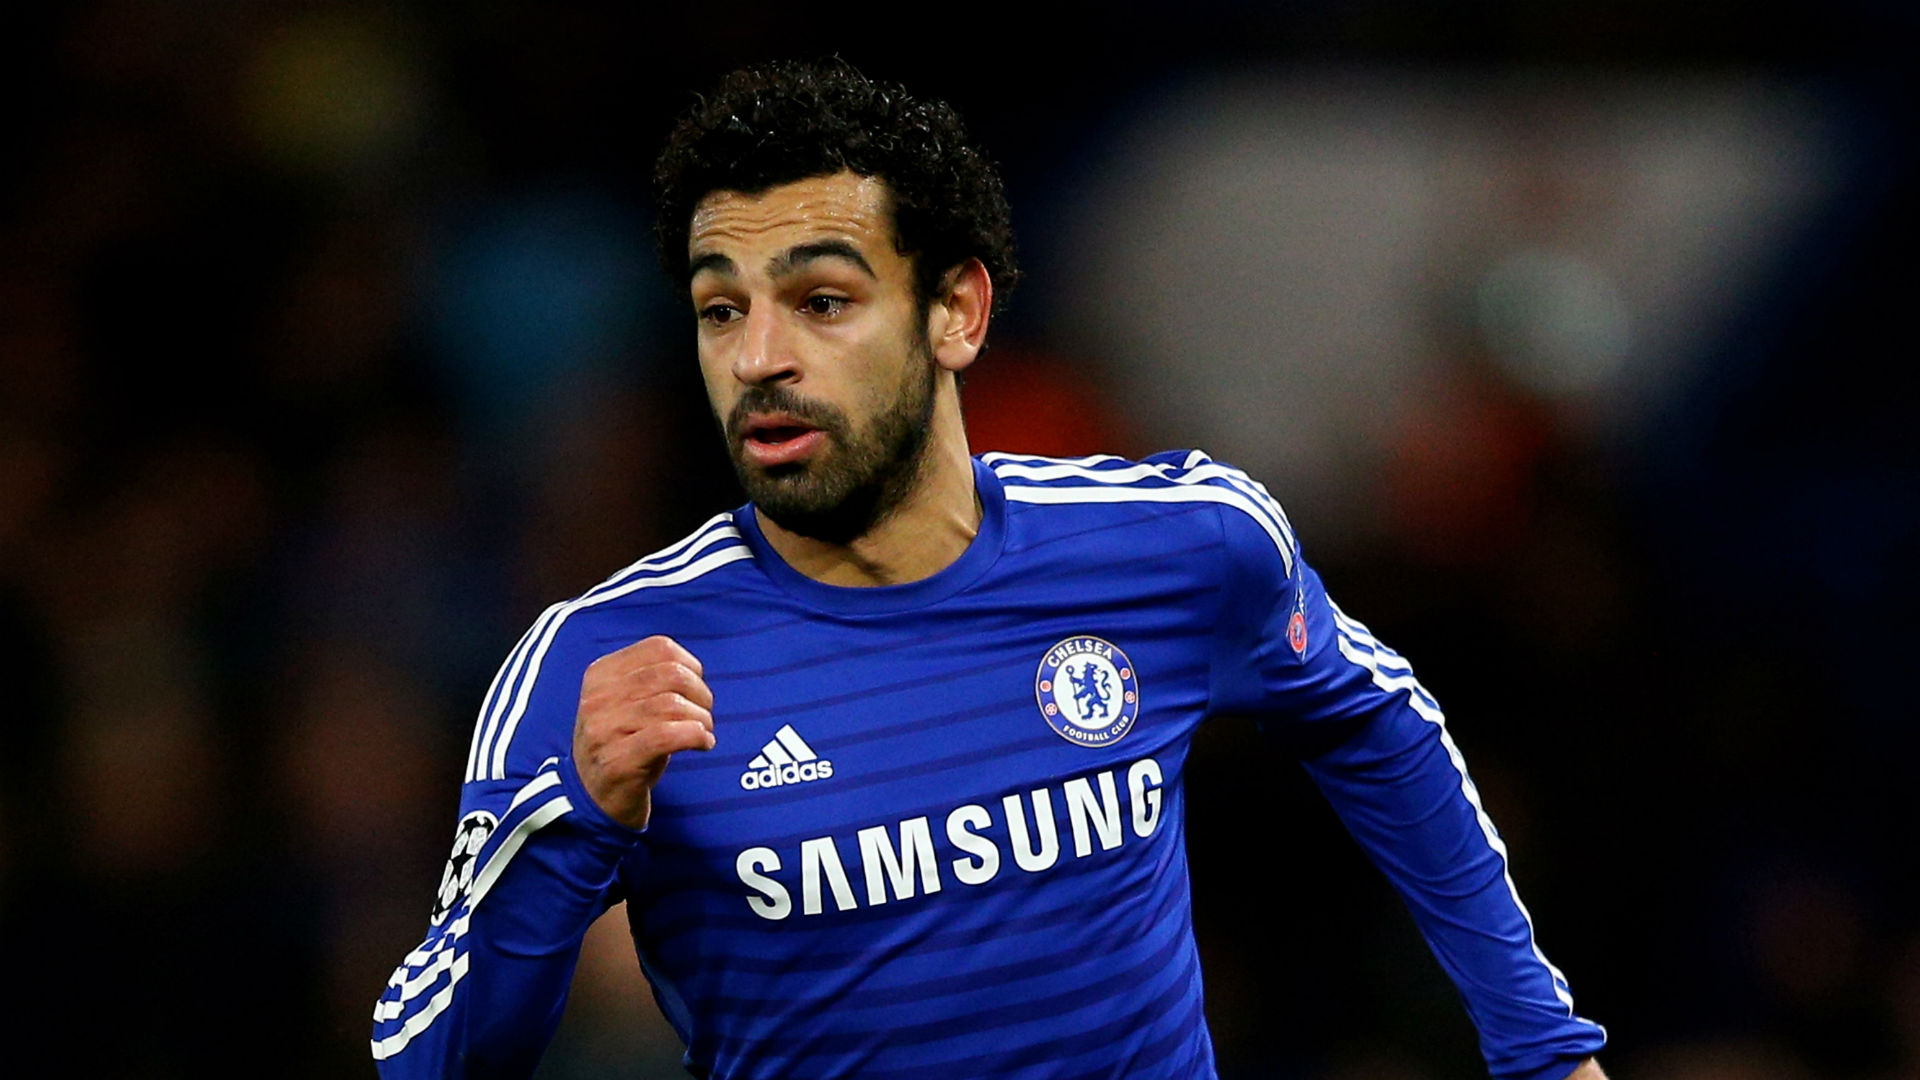 Salah was like Messi in training at Chelsea: Filipe Luis says Mourinho didn't get best out of superstar forward